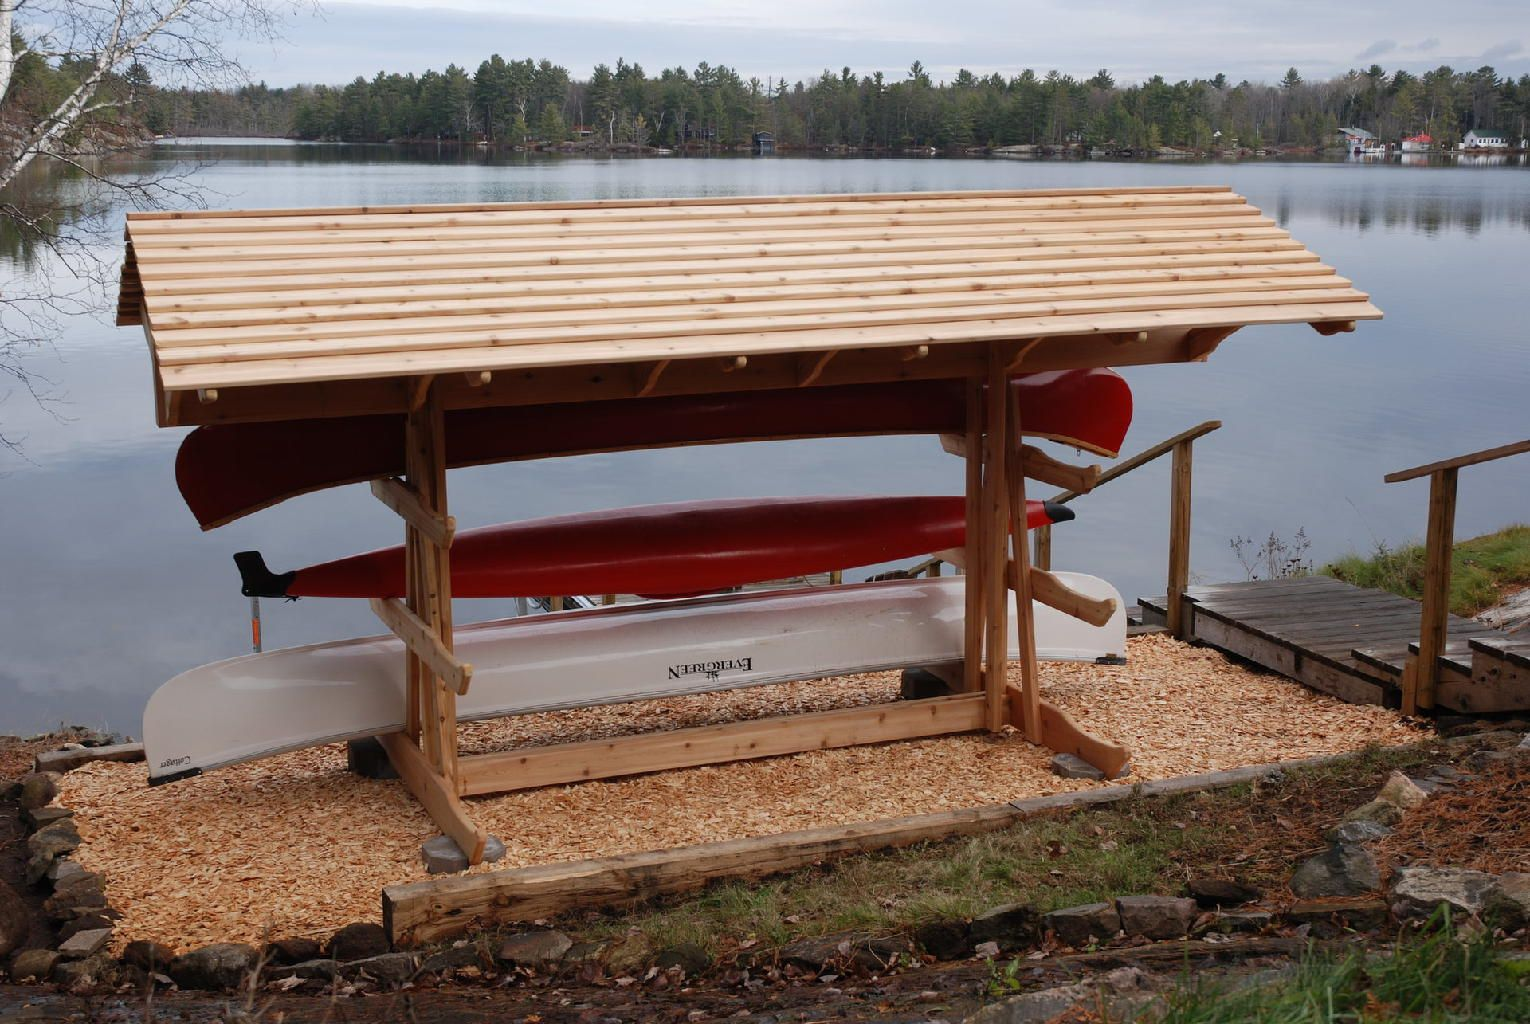 ^ 1000+ images about Kayak Storage on Pinterest